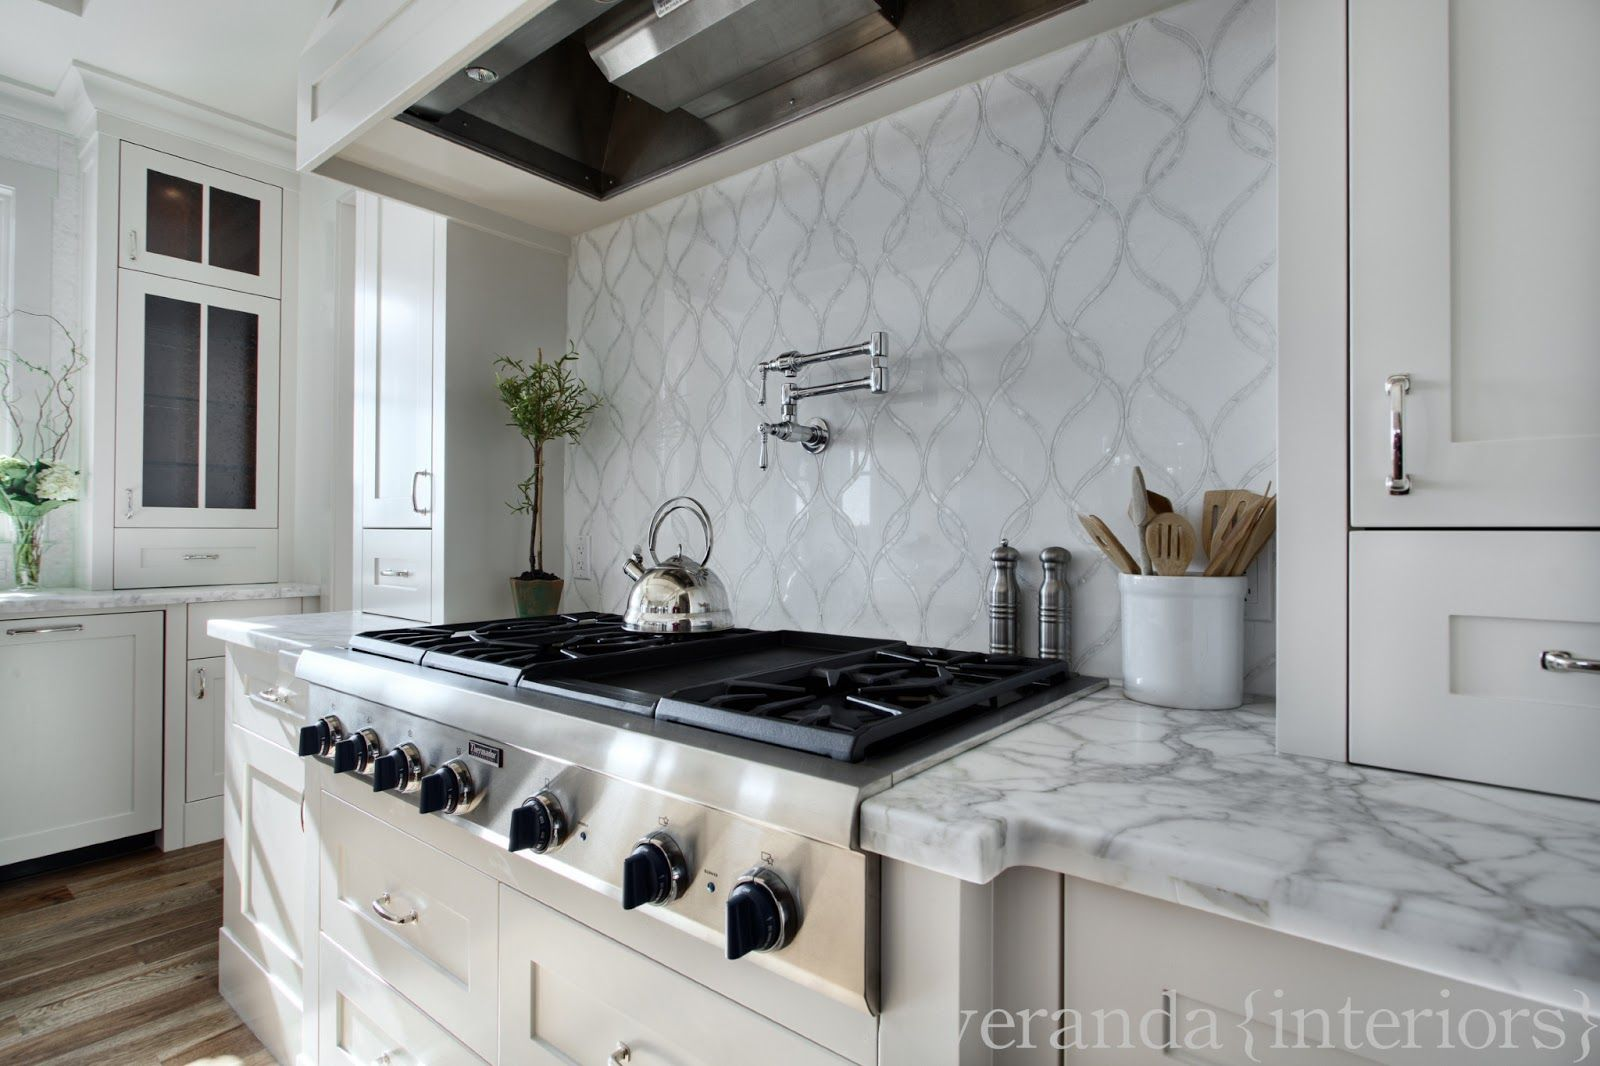 Marble Backsplash Ideas Part - 18: Surprising White Marble Kitchen Backsplash With Wave Pattern Marble  Backsplash And White Wooden Kitchen Cabinets And Built In Stoves. Alluring  Design Ideas ...